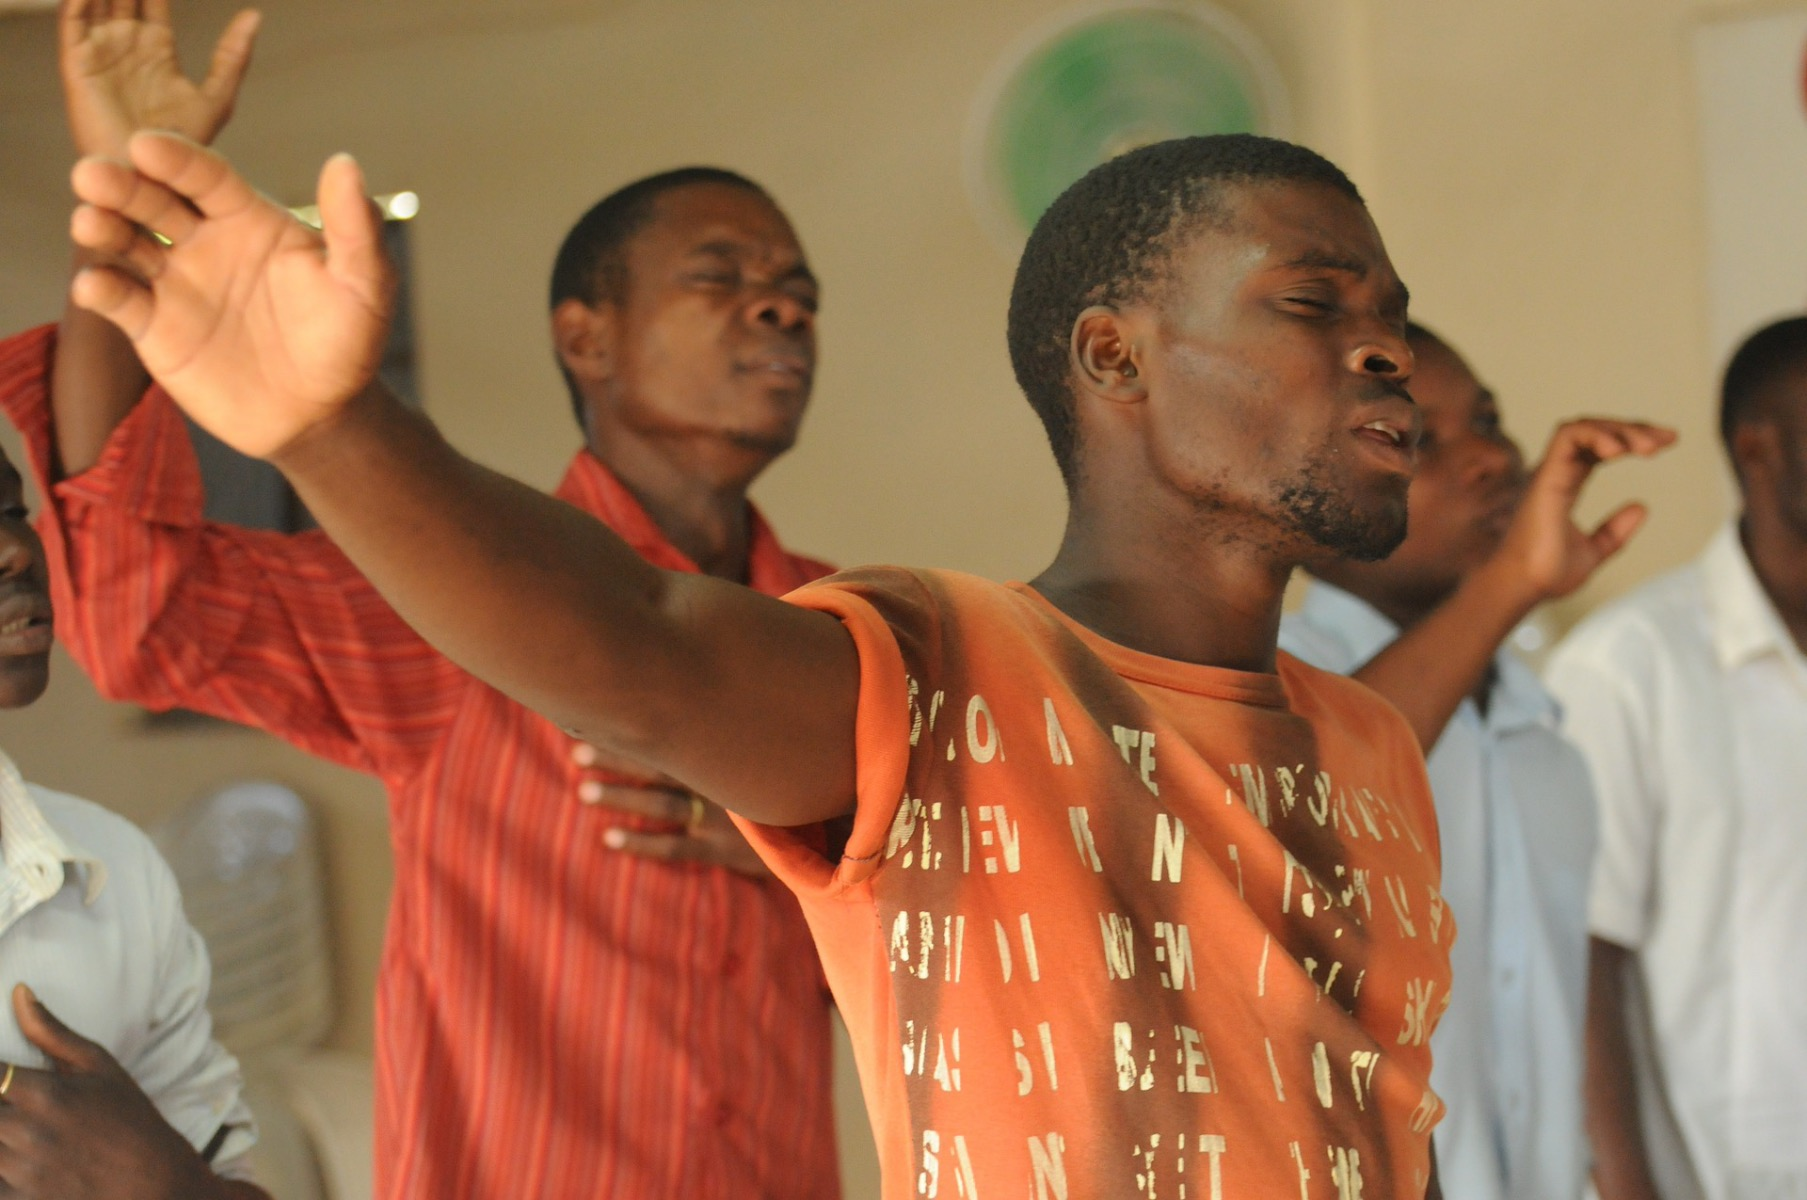 Man in church with raised hand